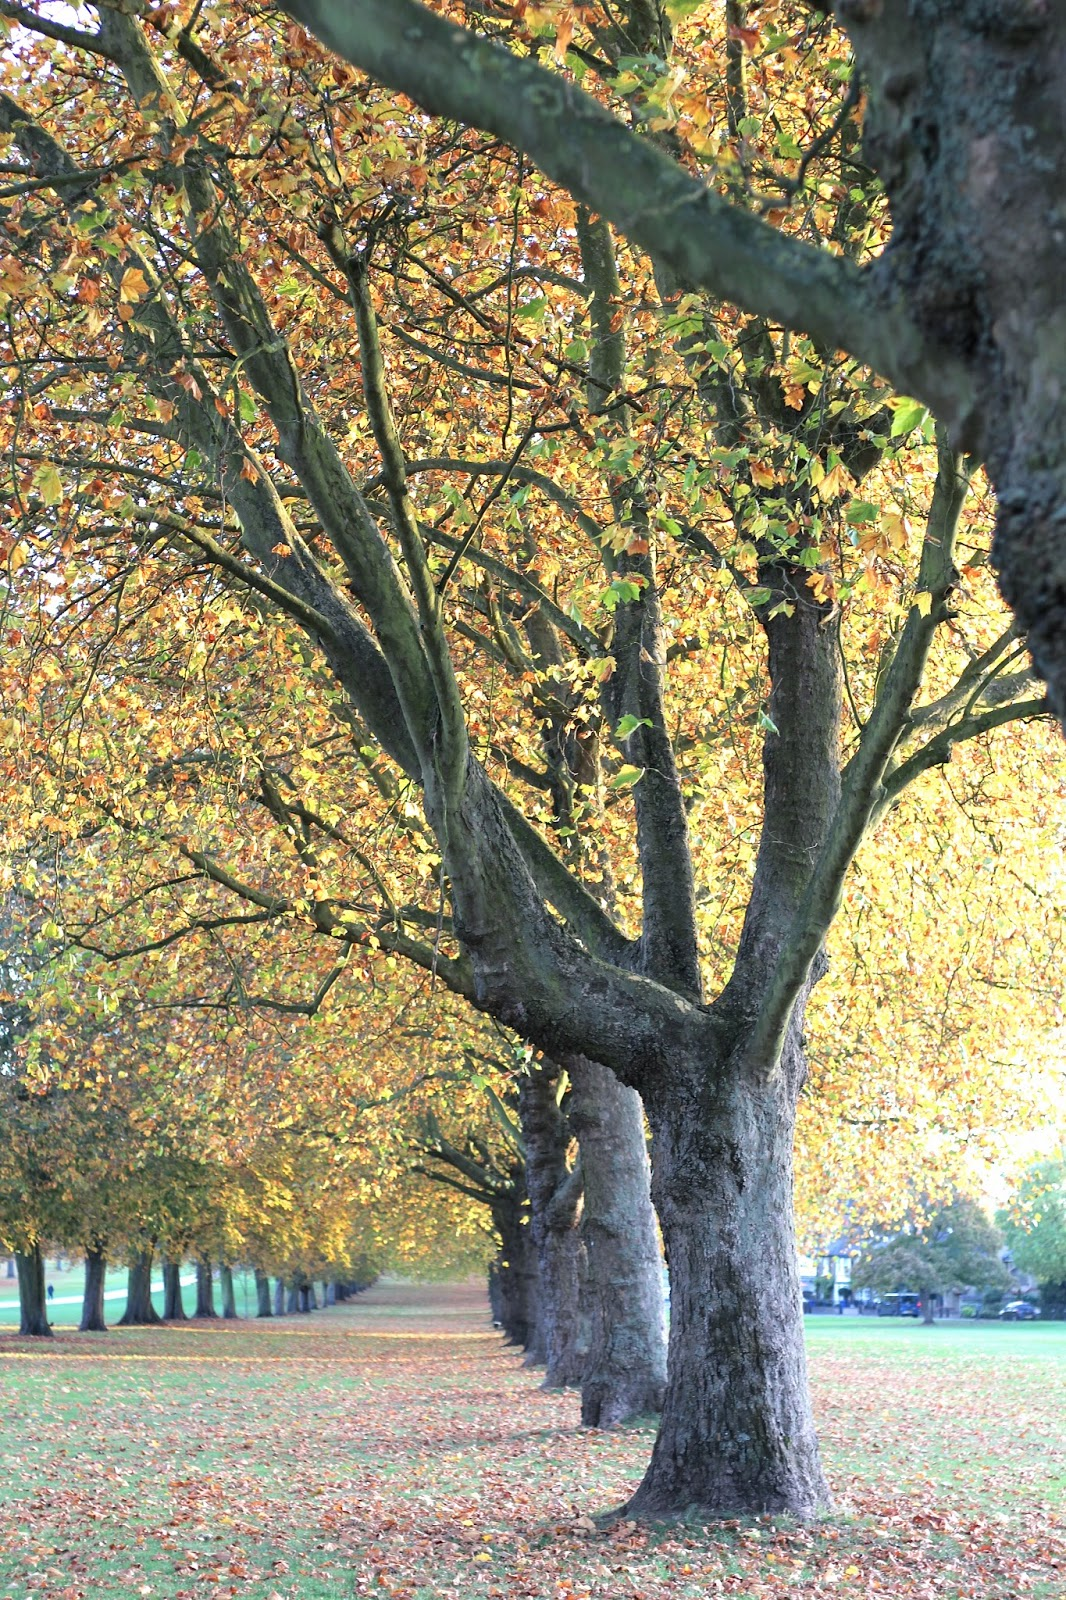 Beautiful yellow and orange autumnal leaves on trees and ground